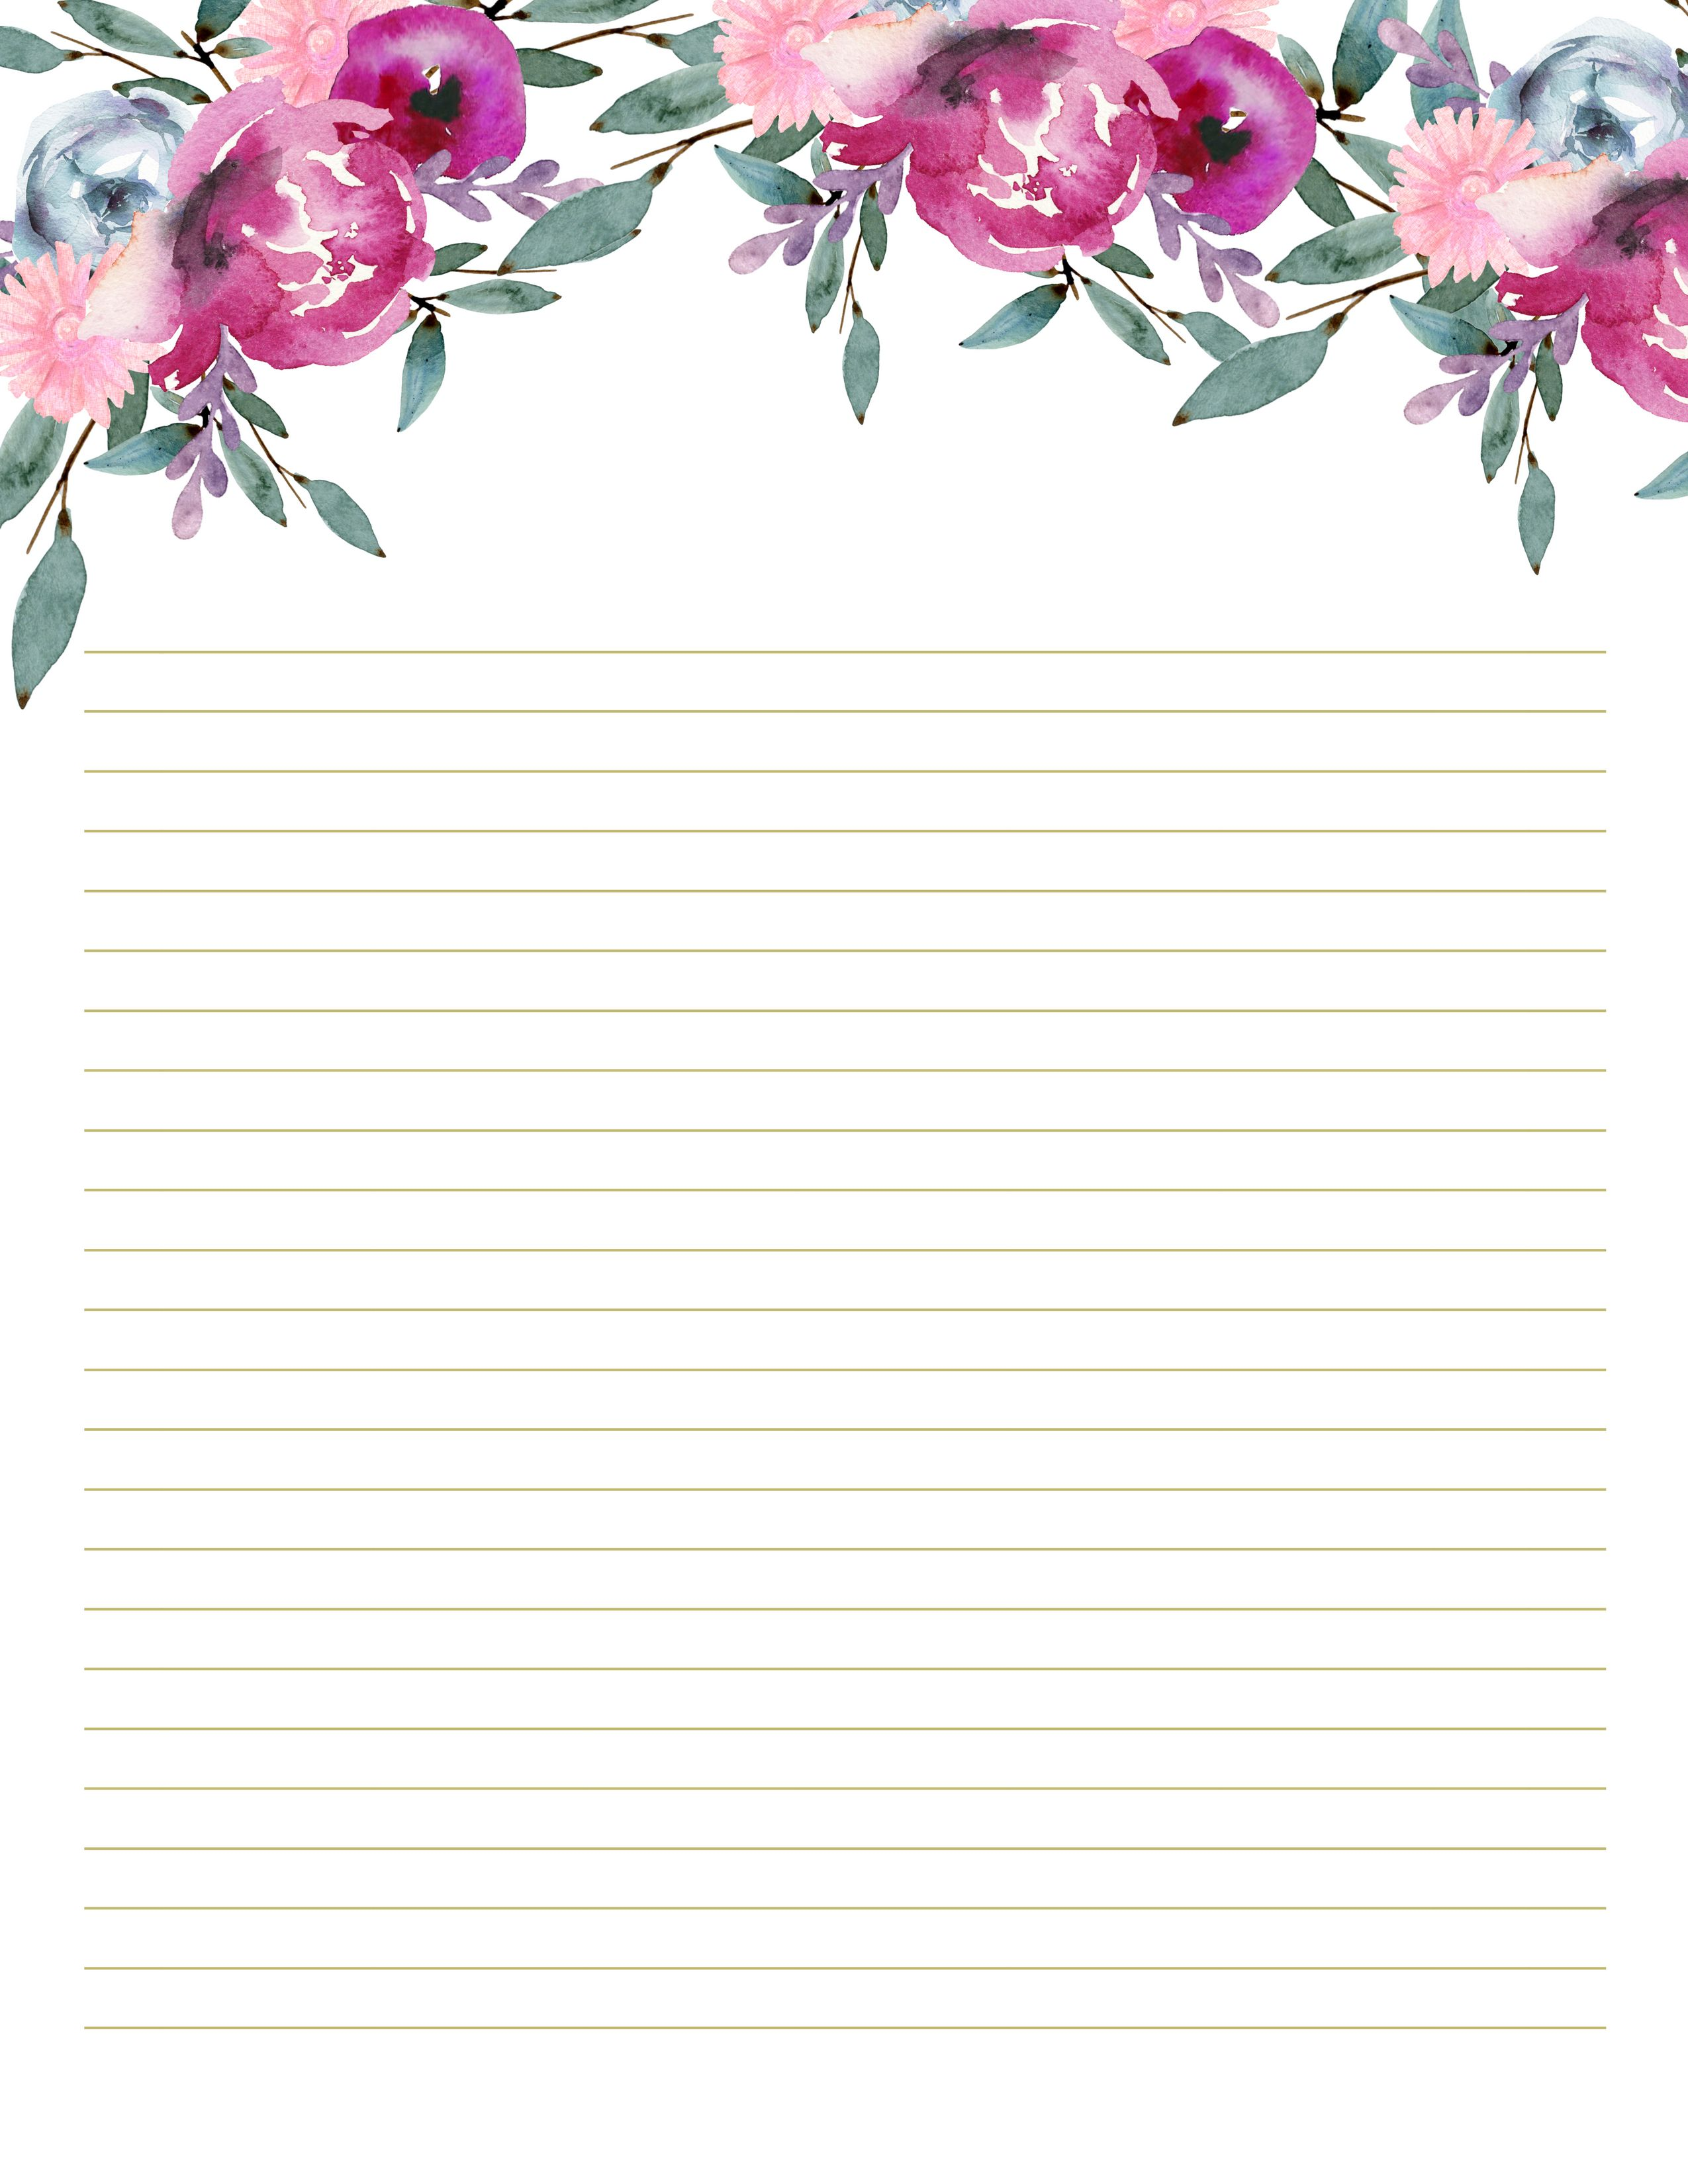 cute lined paper printable, printable lined paper cute, cute printable lined preschool paper, cute lined college ruled paper printable, cute lined paper printable blue, printable lined cute stationery paper, cute lined paper free printable, printable cute lined paper, cute lined notebook paper printable, cute printable lined paper, cute lined paper printable baking, summer cute lined paper printable, cute lined paper printable arrows, cute printable lined paper beauty and the beast, cute printable lined paper for women, printable lined paper for first grade cute, free printable cute lined paper, lined printable paper cute, cute printable lined paper for kids, kawaii cute lined paper printable, pretty lined paper, pretty lined paper printable, pretty printable lined paper, pretty lined writing paper, pretty music lined paper, pretty pad of lined paper, free pretty bible lined paper download, lined paper to write poems on with pretty border, pretty printable lined paper food, simple pretty lined paper, lprintable pretty lined paper, pretty christmas lined paper, lined pretty paper pink, free pretty lined paper download, lined pretty paper black and white with butterflys, photoshop template for pretty lined paper, lined paper background pretty, pretty lined paper floral printable, pretty notes on lined paper, pretty lined note paper, printable pretty lined paper love, pretty rainbow lined paper, lined pretty paper black and white, pretty pink and gold lined paper printable, pretty lined paper template, pretty lined paper background for word, free pretty printable lined paper, a pretty sheet of lined paper, pretty lined paper christmas themed, pretty lined writting paper, pretty lined paper anniersary printable, pretty pink and gold lined paper, pretty lined paper heart printable, pretty lined domino stationery paper printable, pretty printable lined paper for kids, pretty rainbow with bold lined paper, how to make pretty three-d drawings on lined paper, how to draw pre